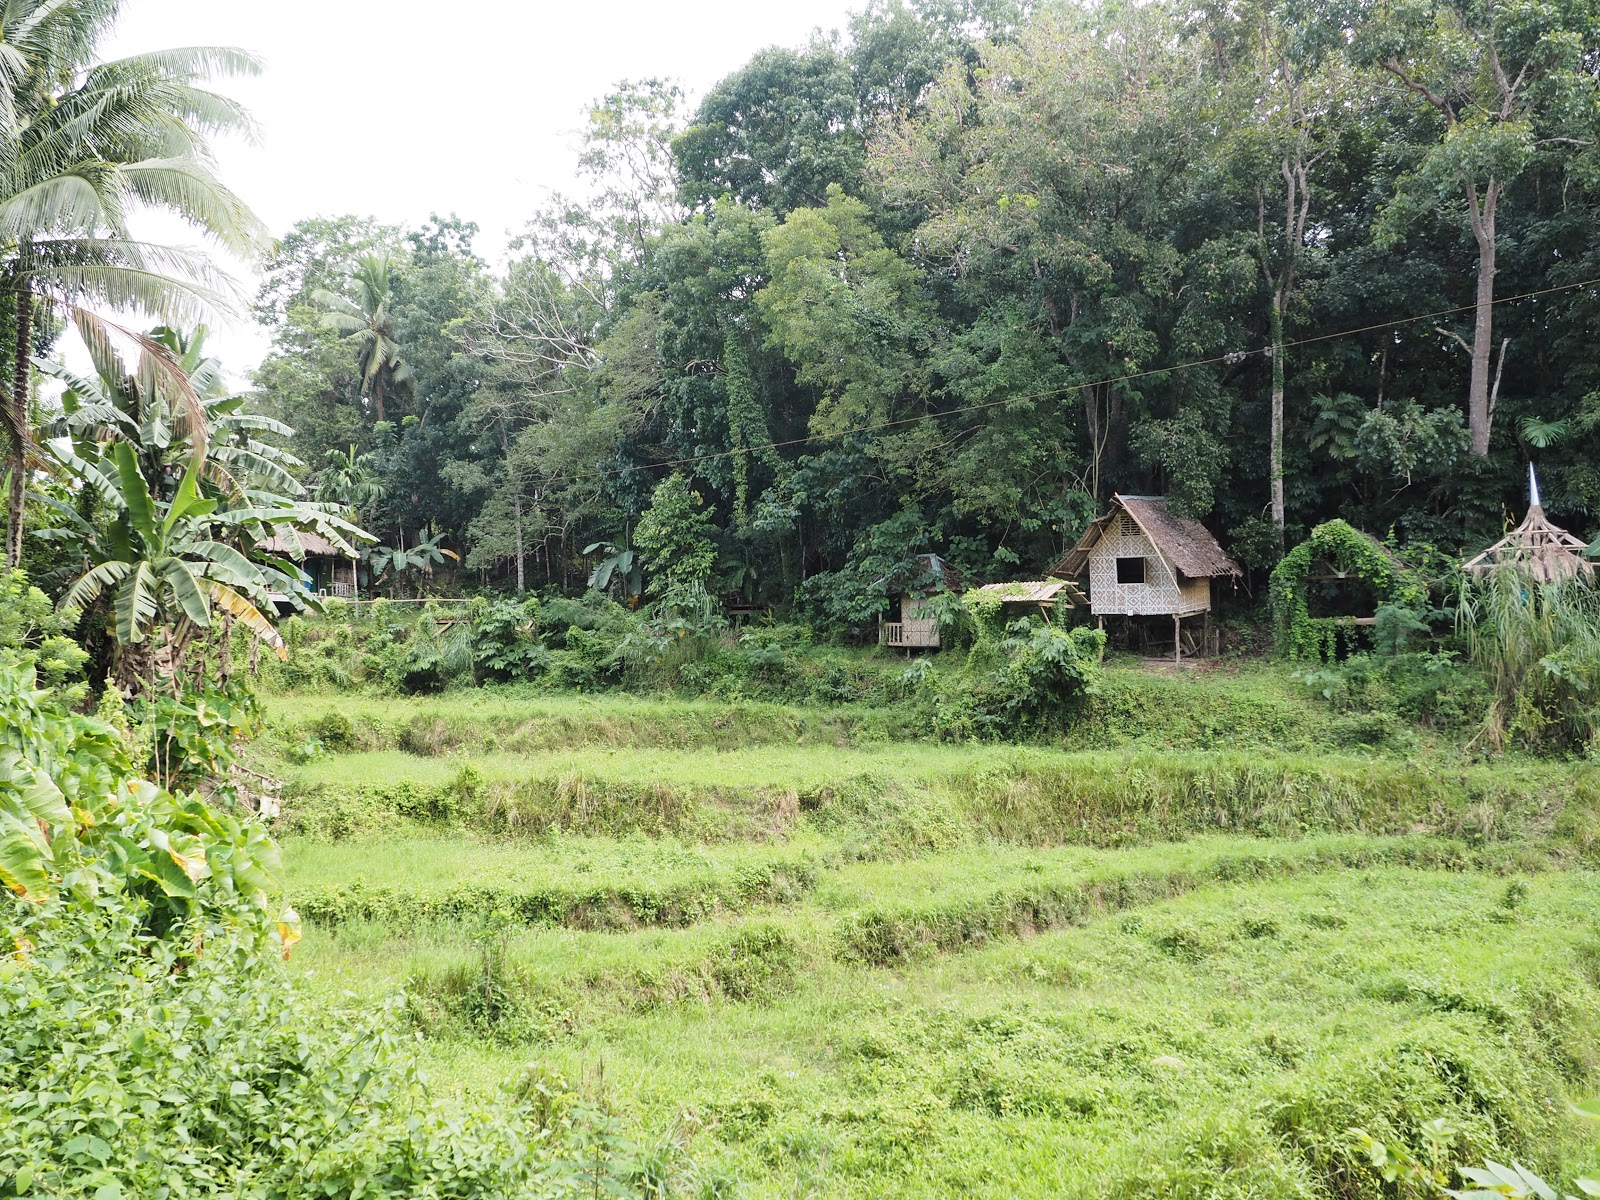 Countryside, Bohol